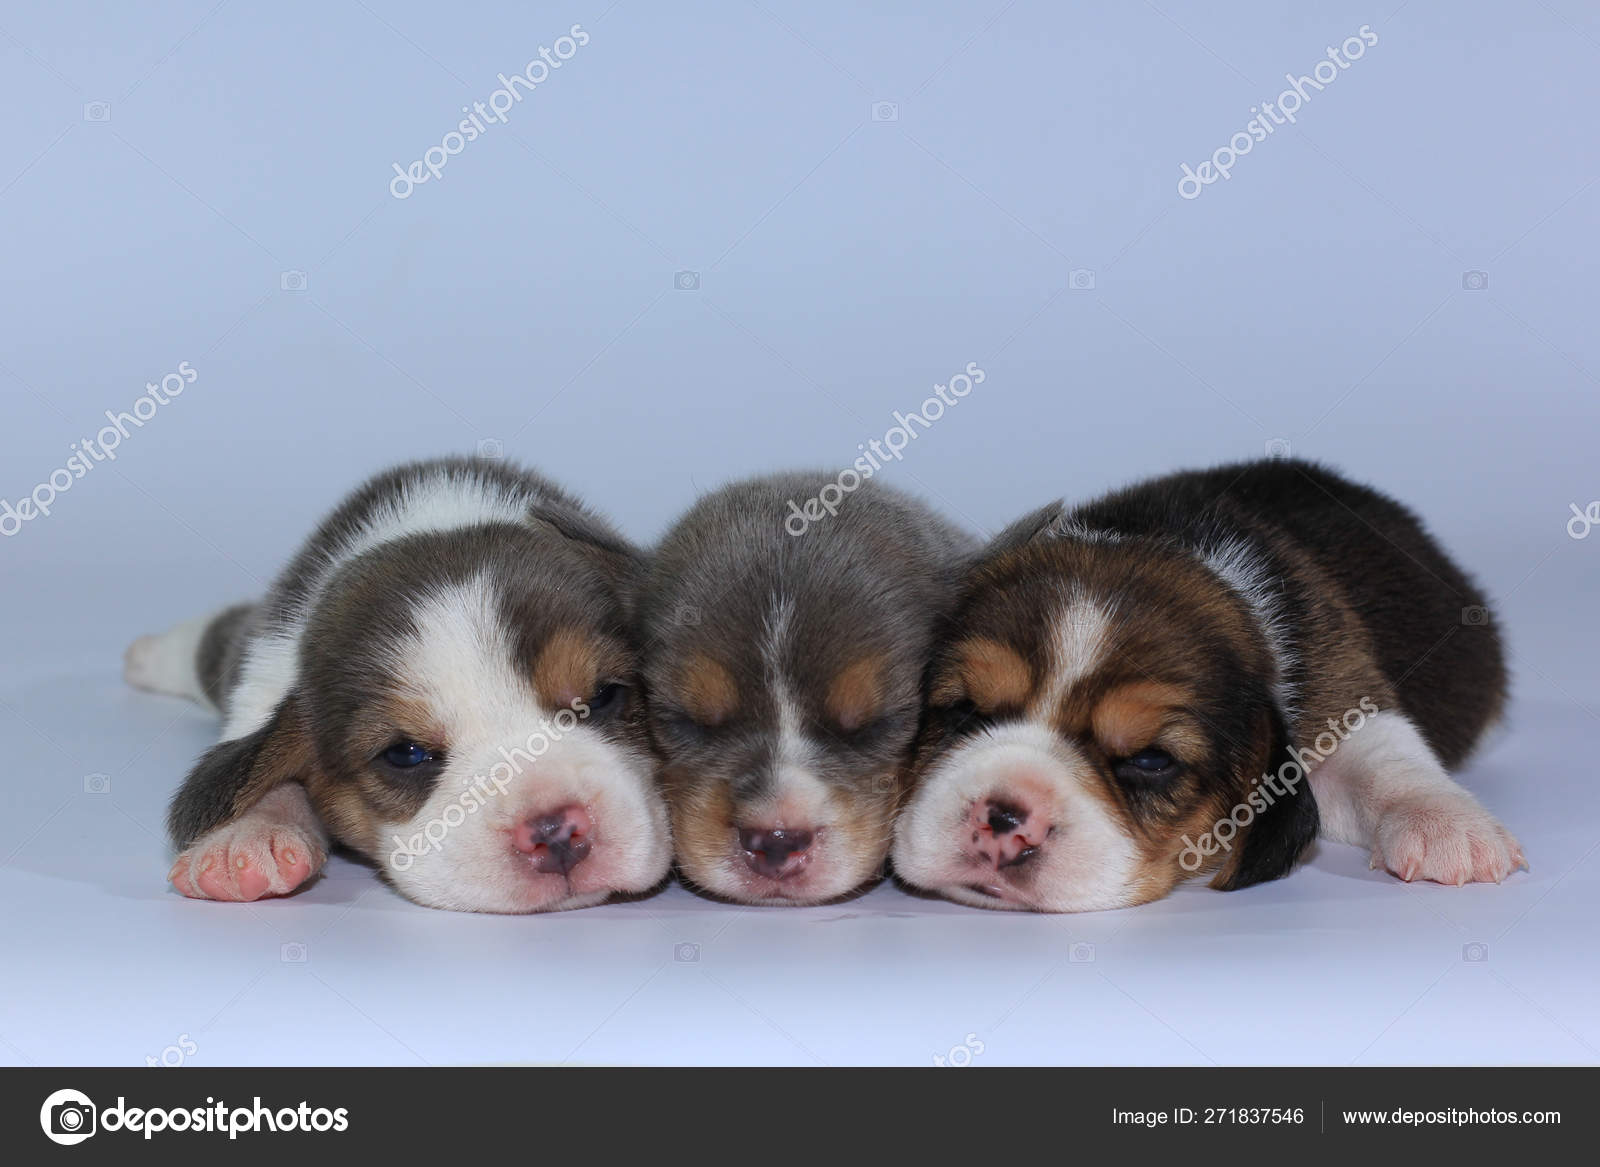 Silver Tri Color Beagle Puppy Sleeping Looking First Time Stock Photo C S Thanawathreborn Gmail Com 271837546